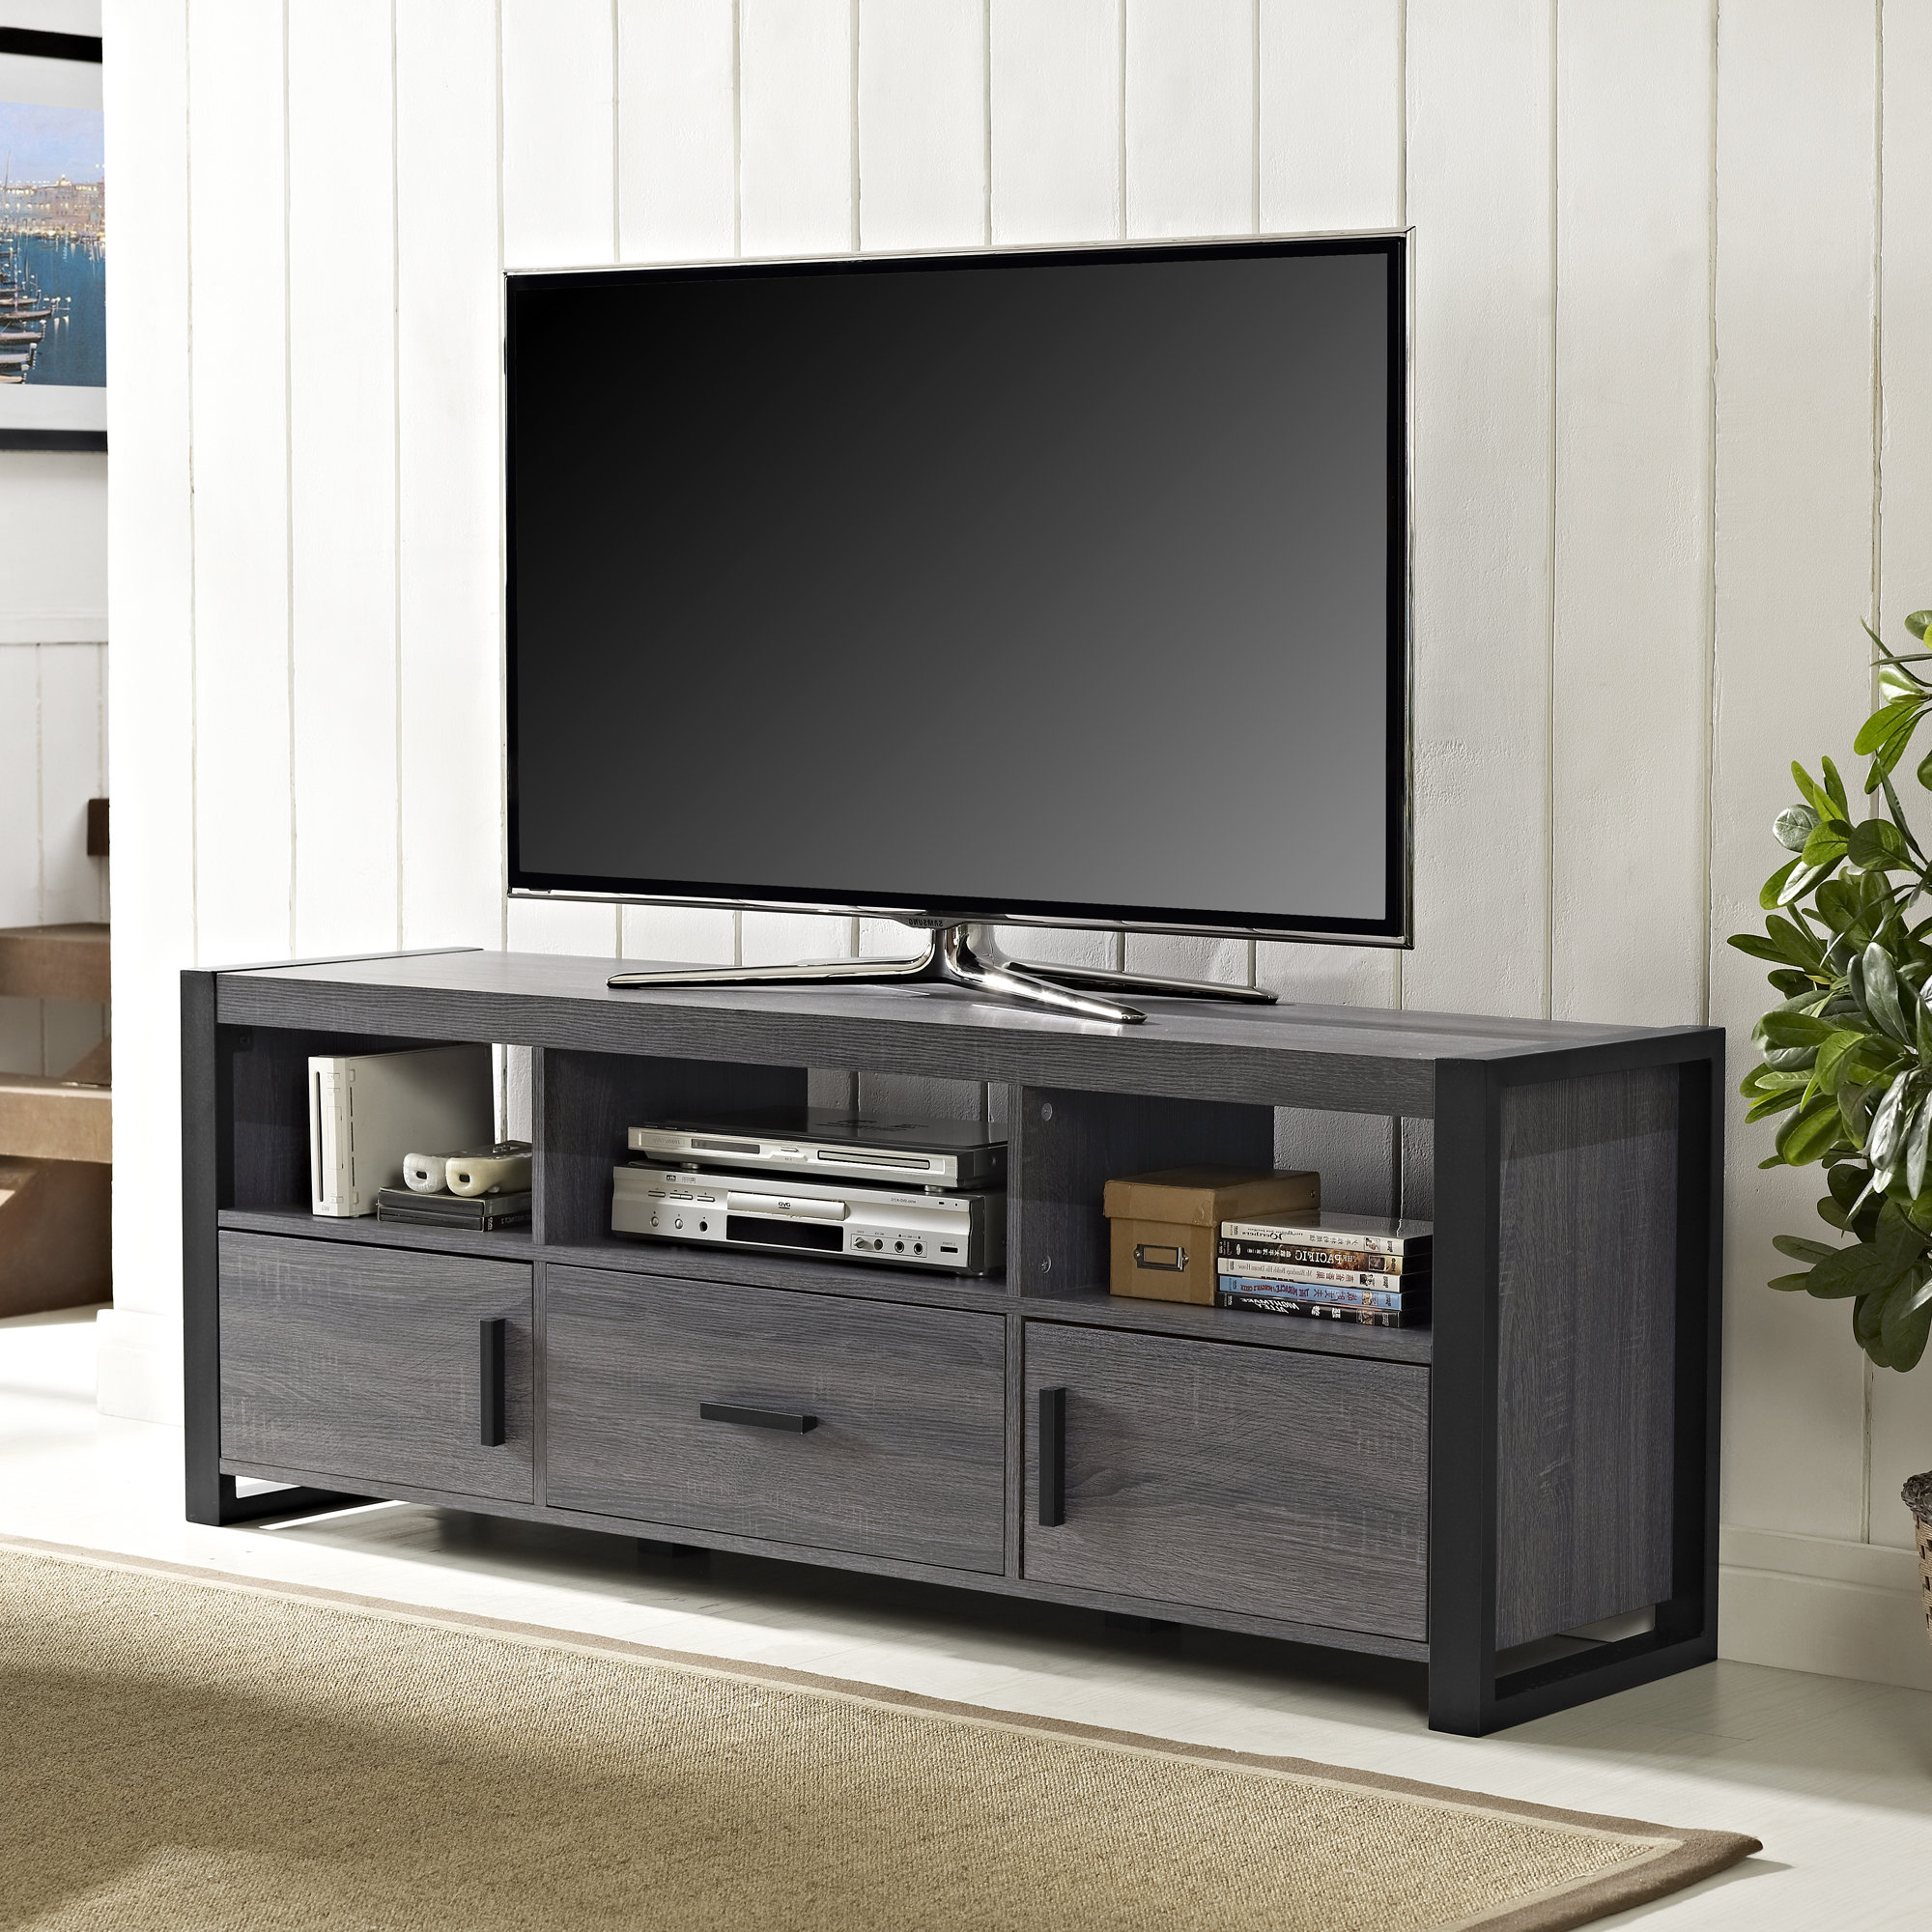 "Tv Stands | Joss & Main Intended For Parmelee Tv Stands For Tvs Up To 65"" (View 8 of 20)"